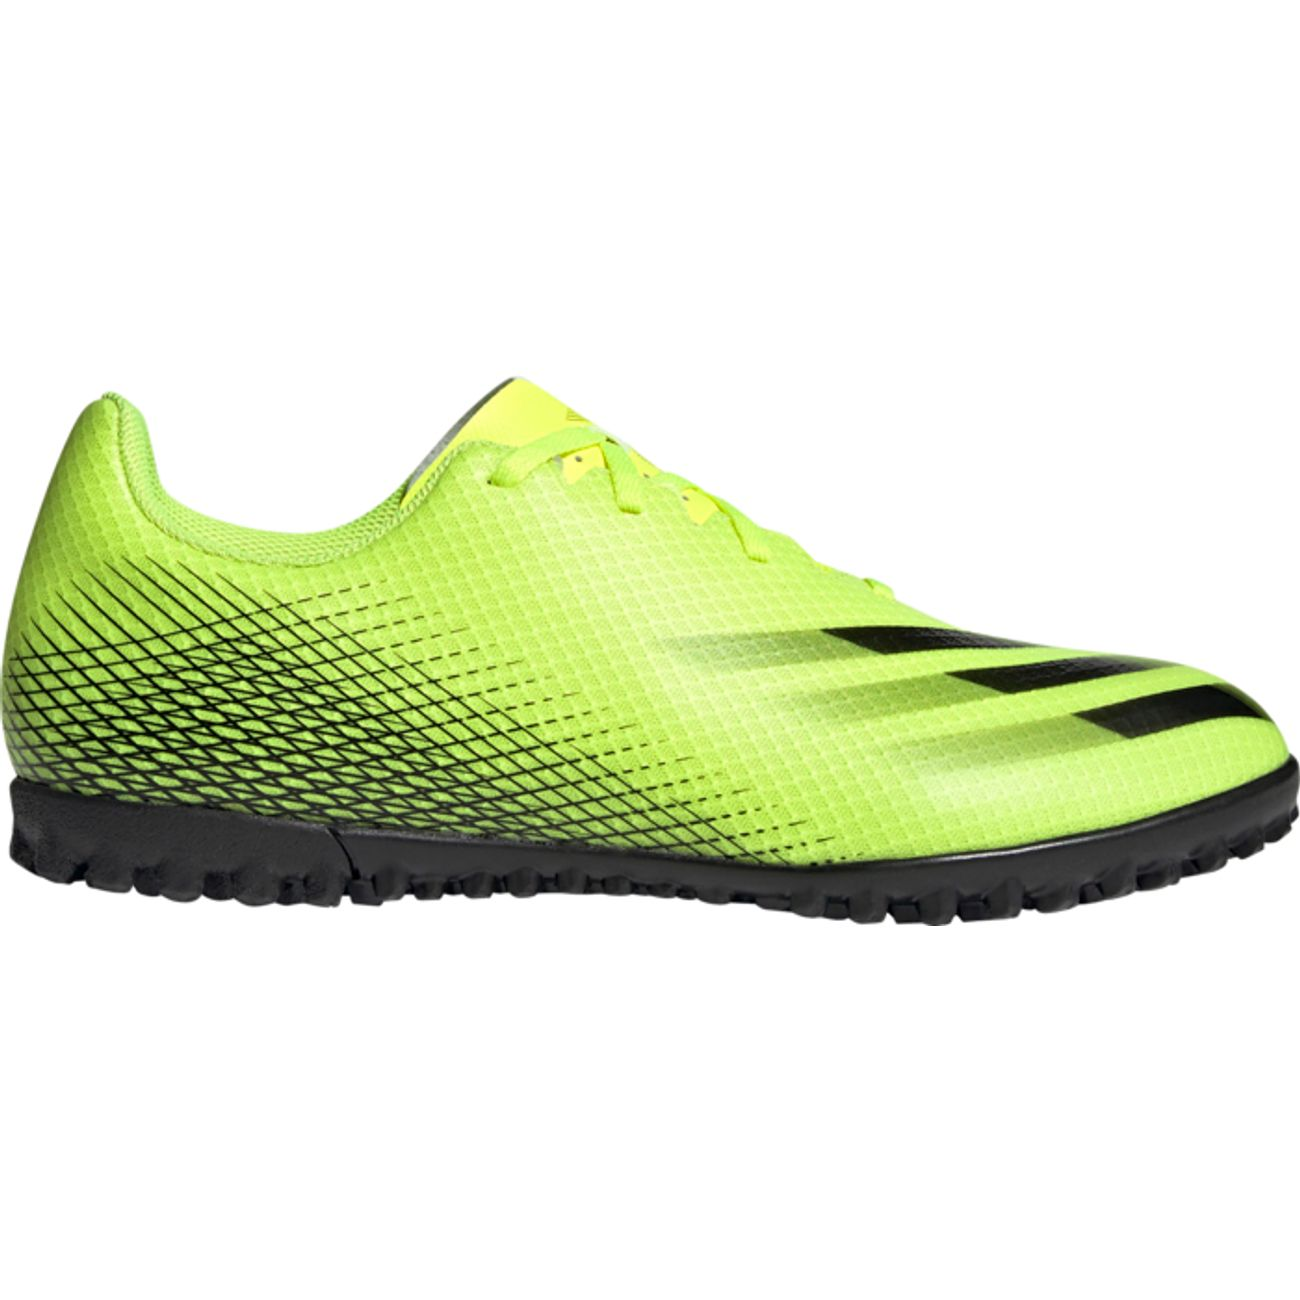 CHAUSSURES BASSES Football homme ADIDAS X GHOSTED.4 TF